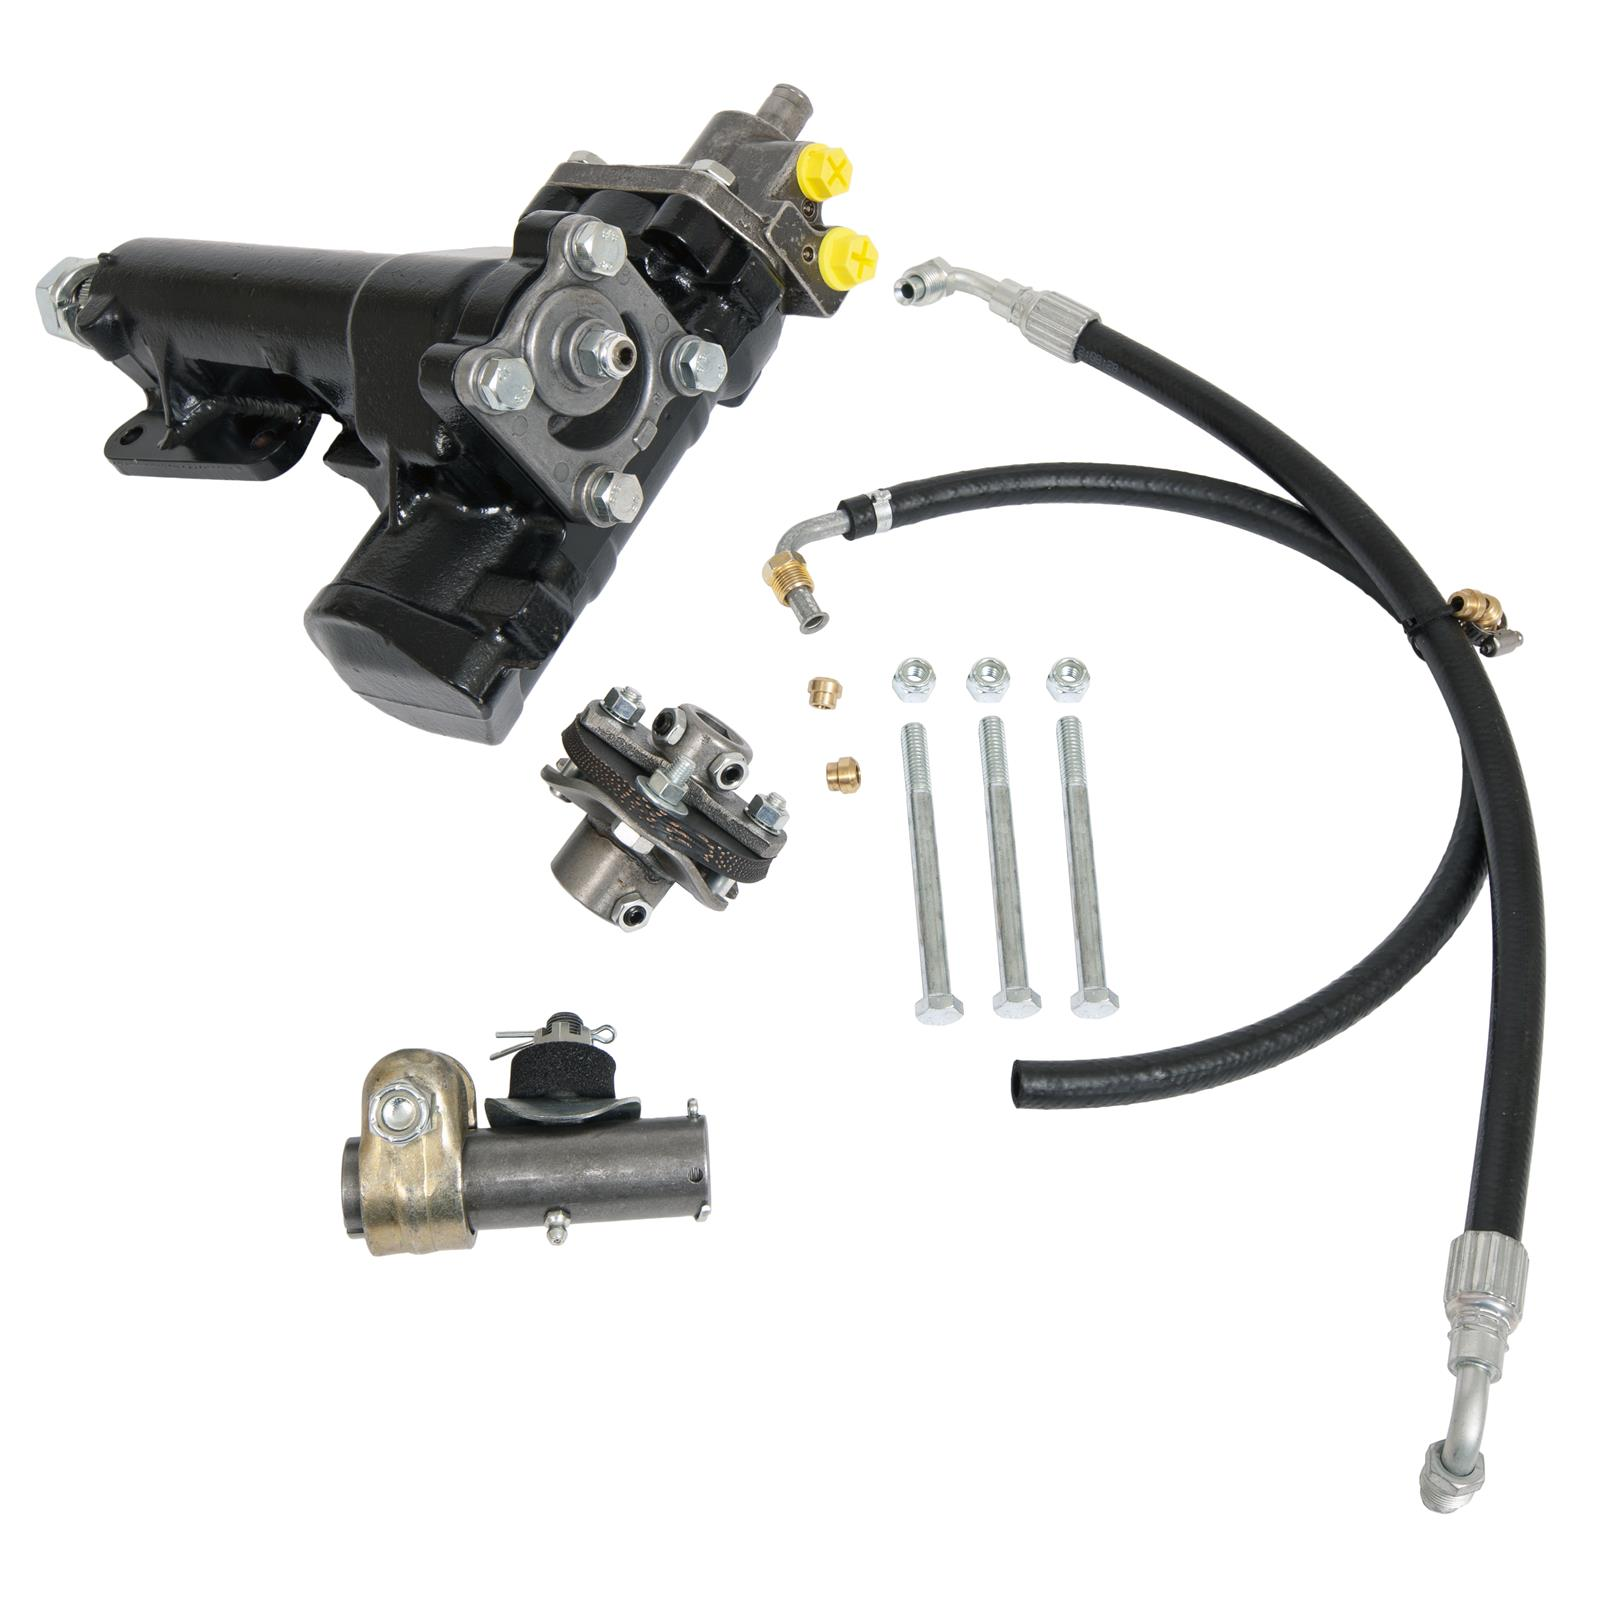 Borgeson Corvette Power Steering Kits 999032 Free Shipping On 196567 Bb Pump Parts And Accessories Orders Over 99 At Summit Racing